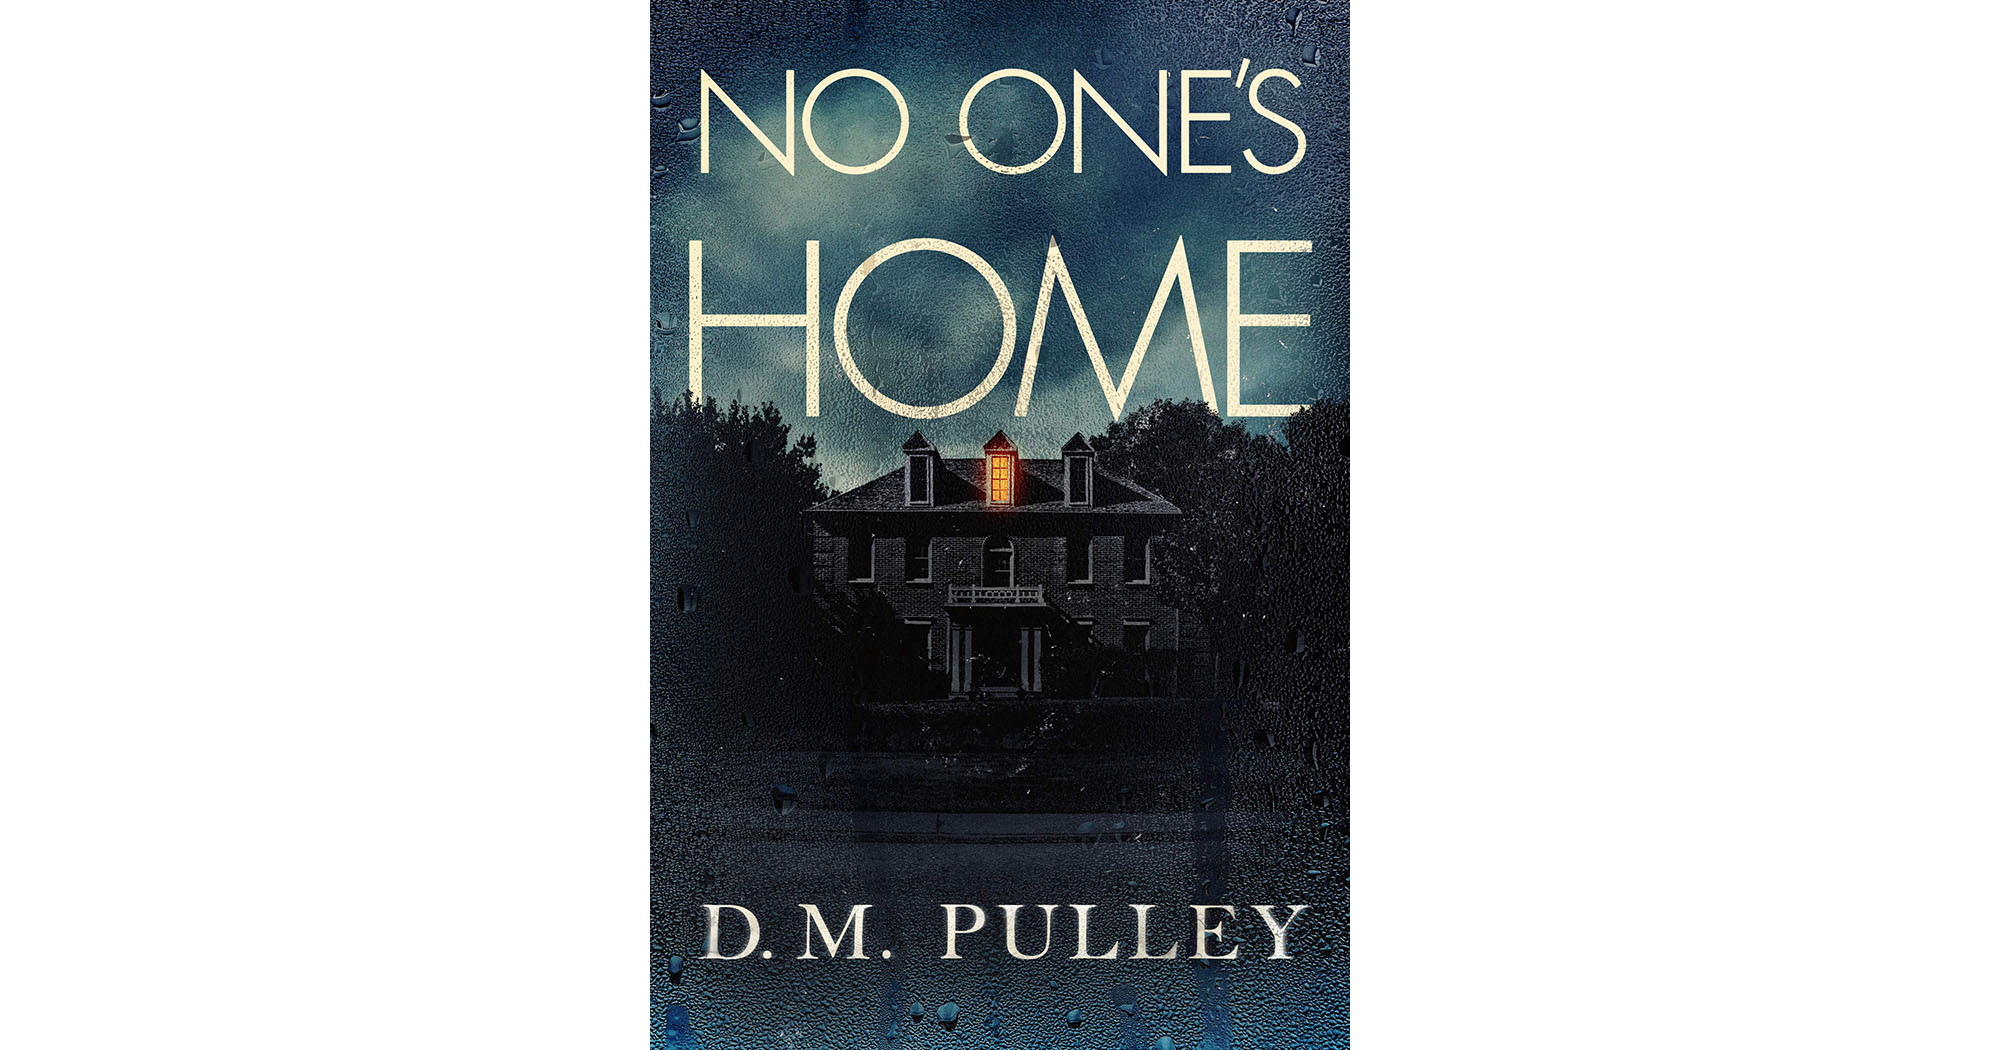 No One's Home, by D.M. Pulley